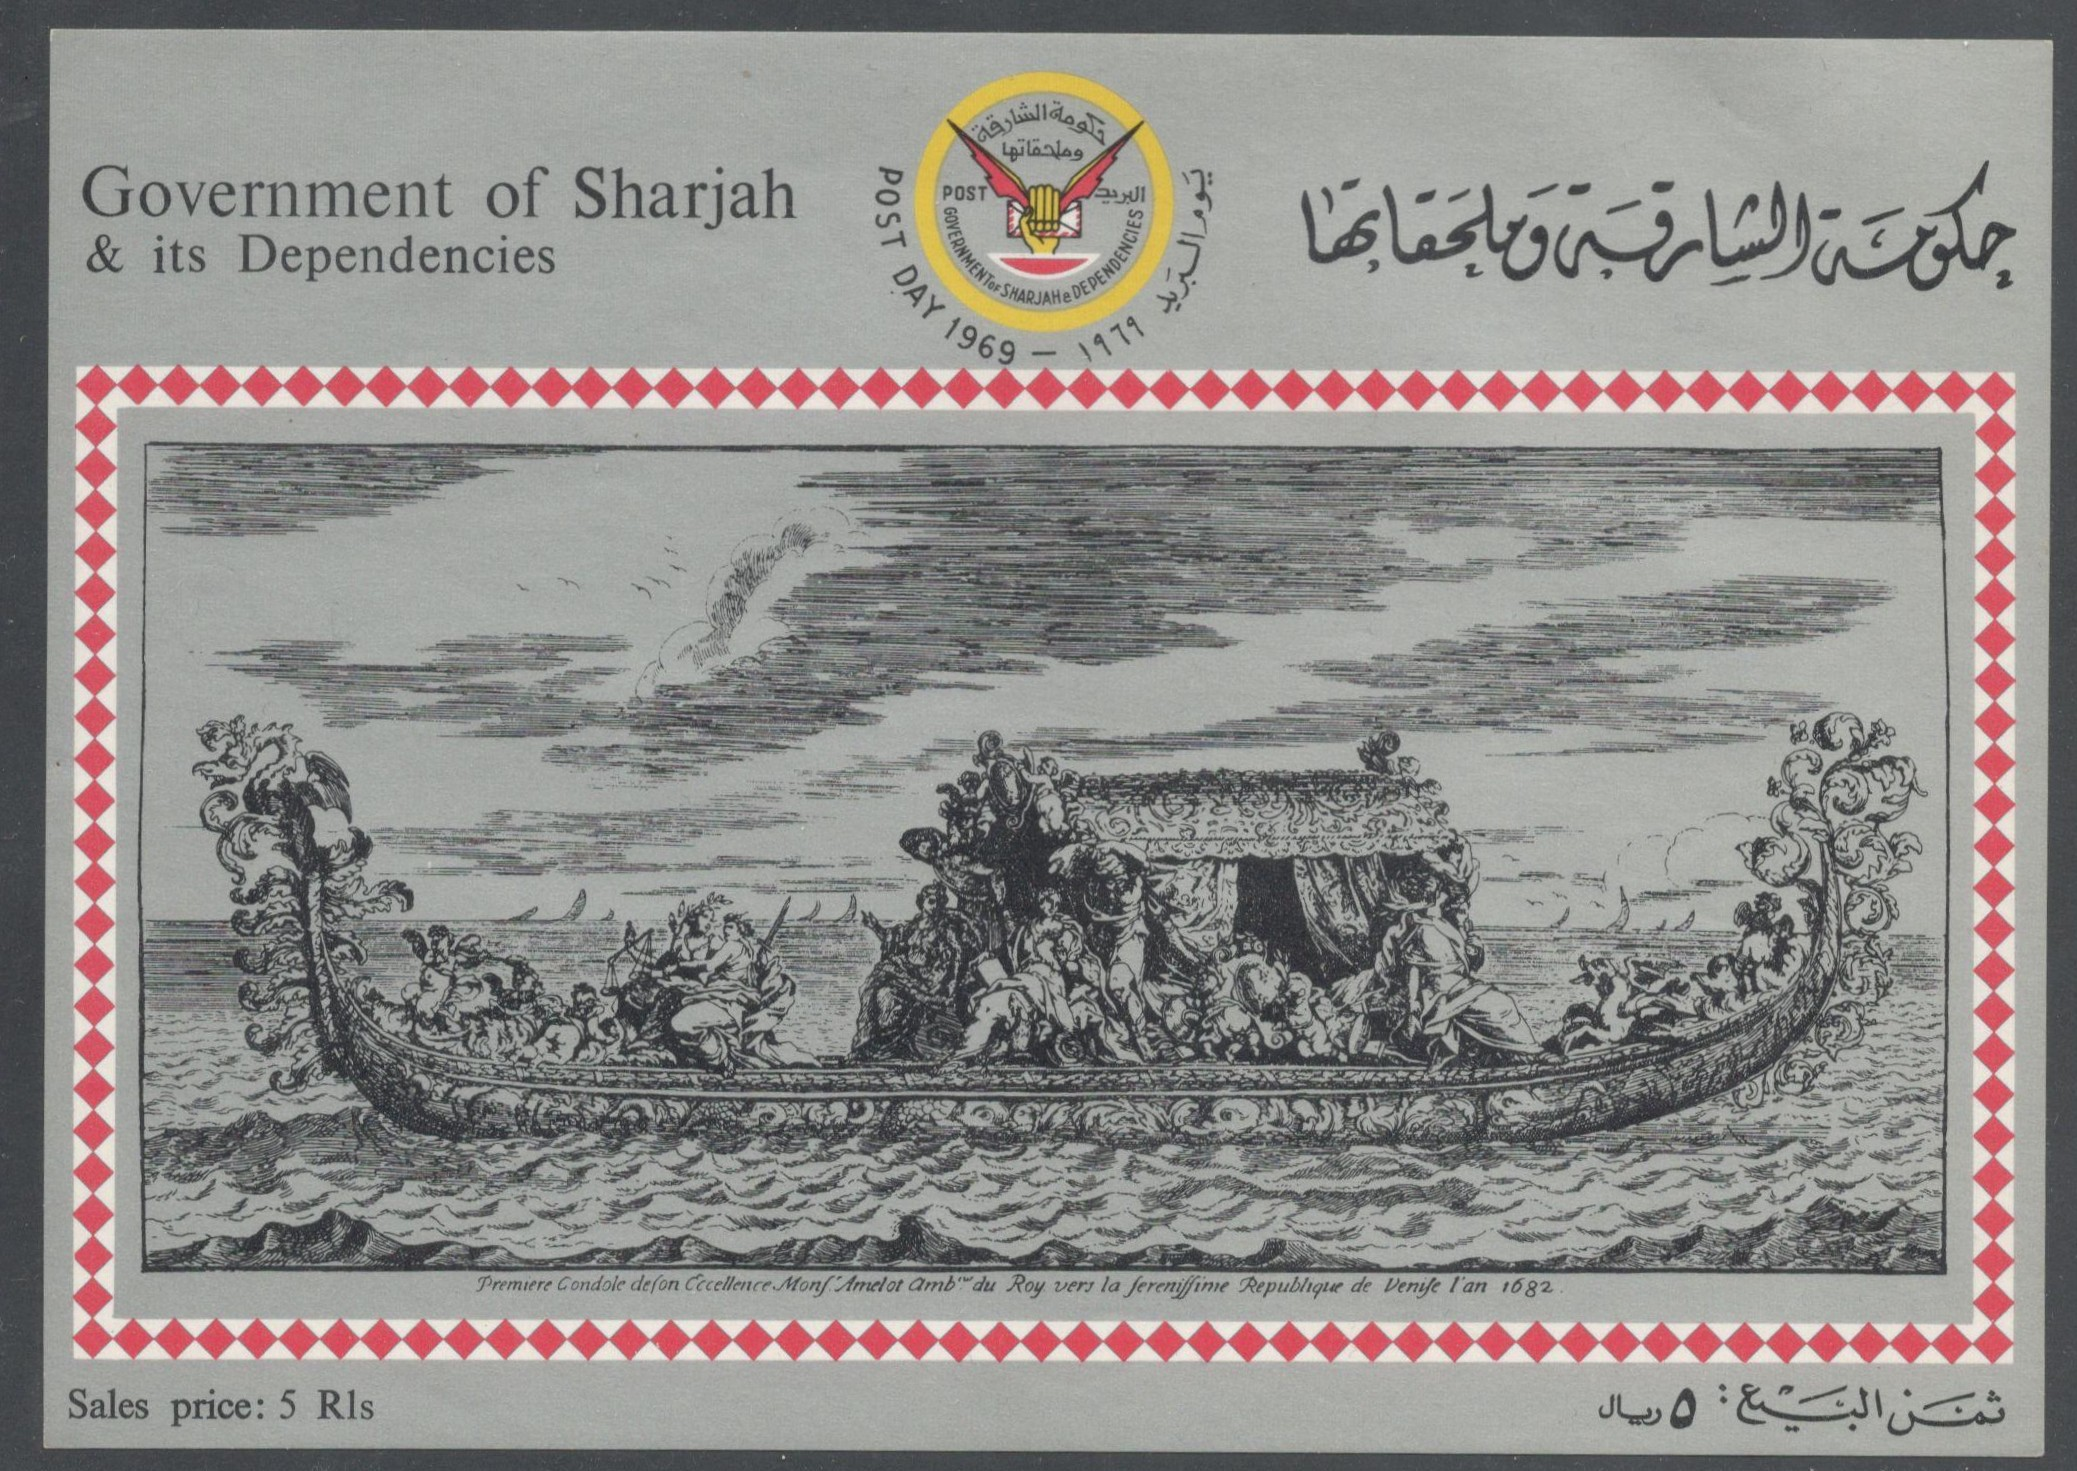 Lot 5 - SOUVENIR SHEET GOVERNMENT OF SHARJAH & ITS DEPENDENCIES - POST DAY 1969